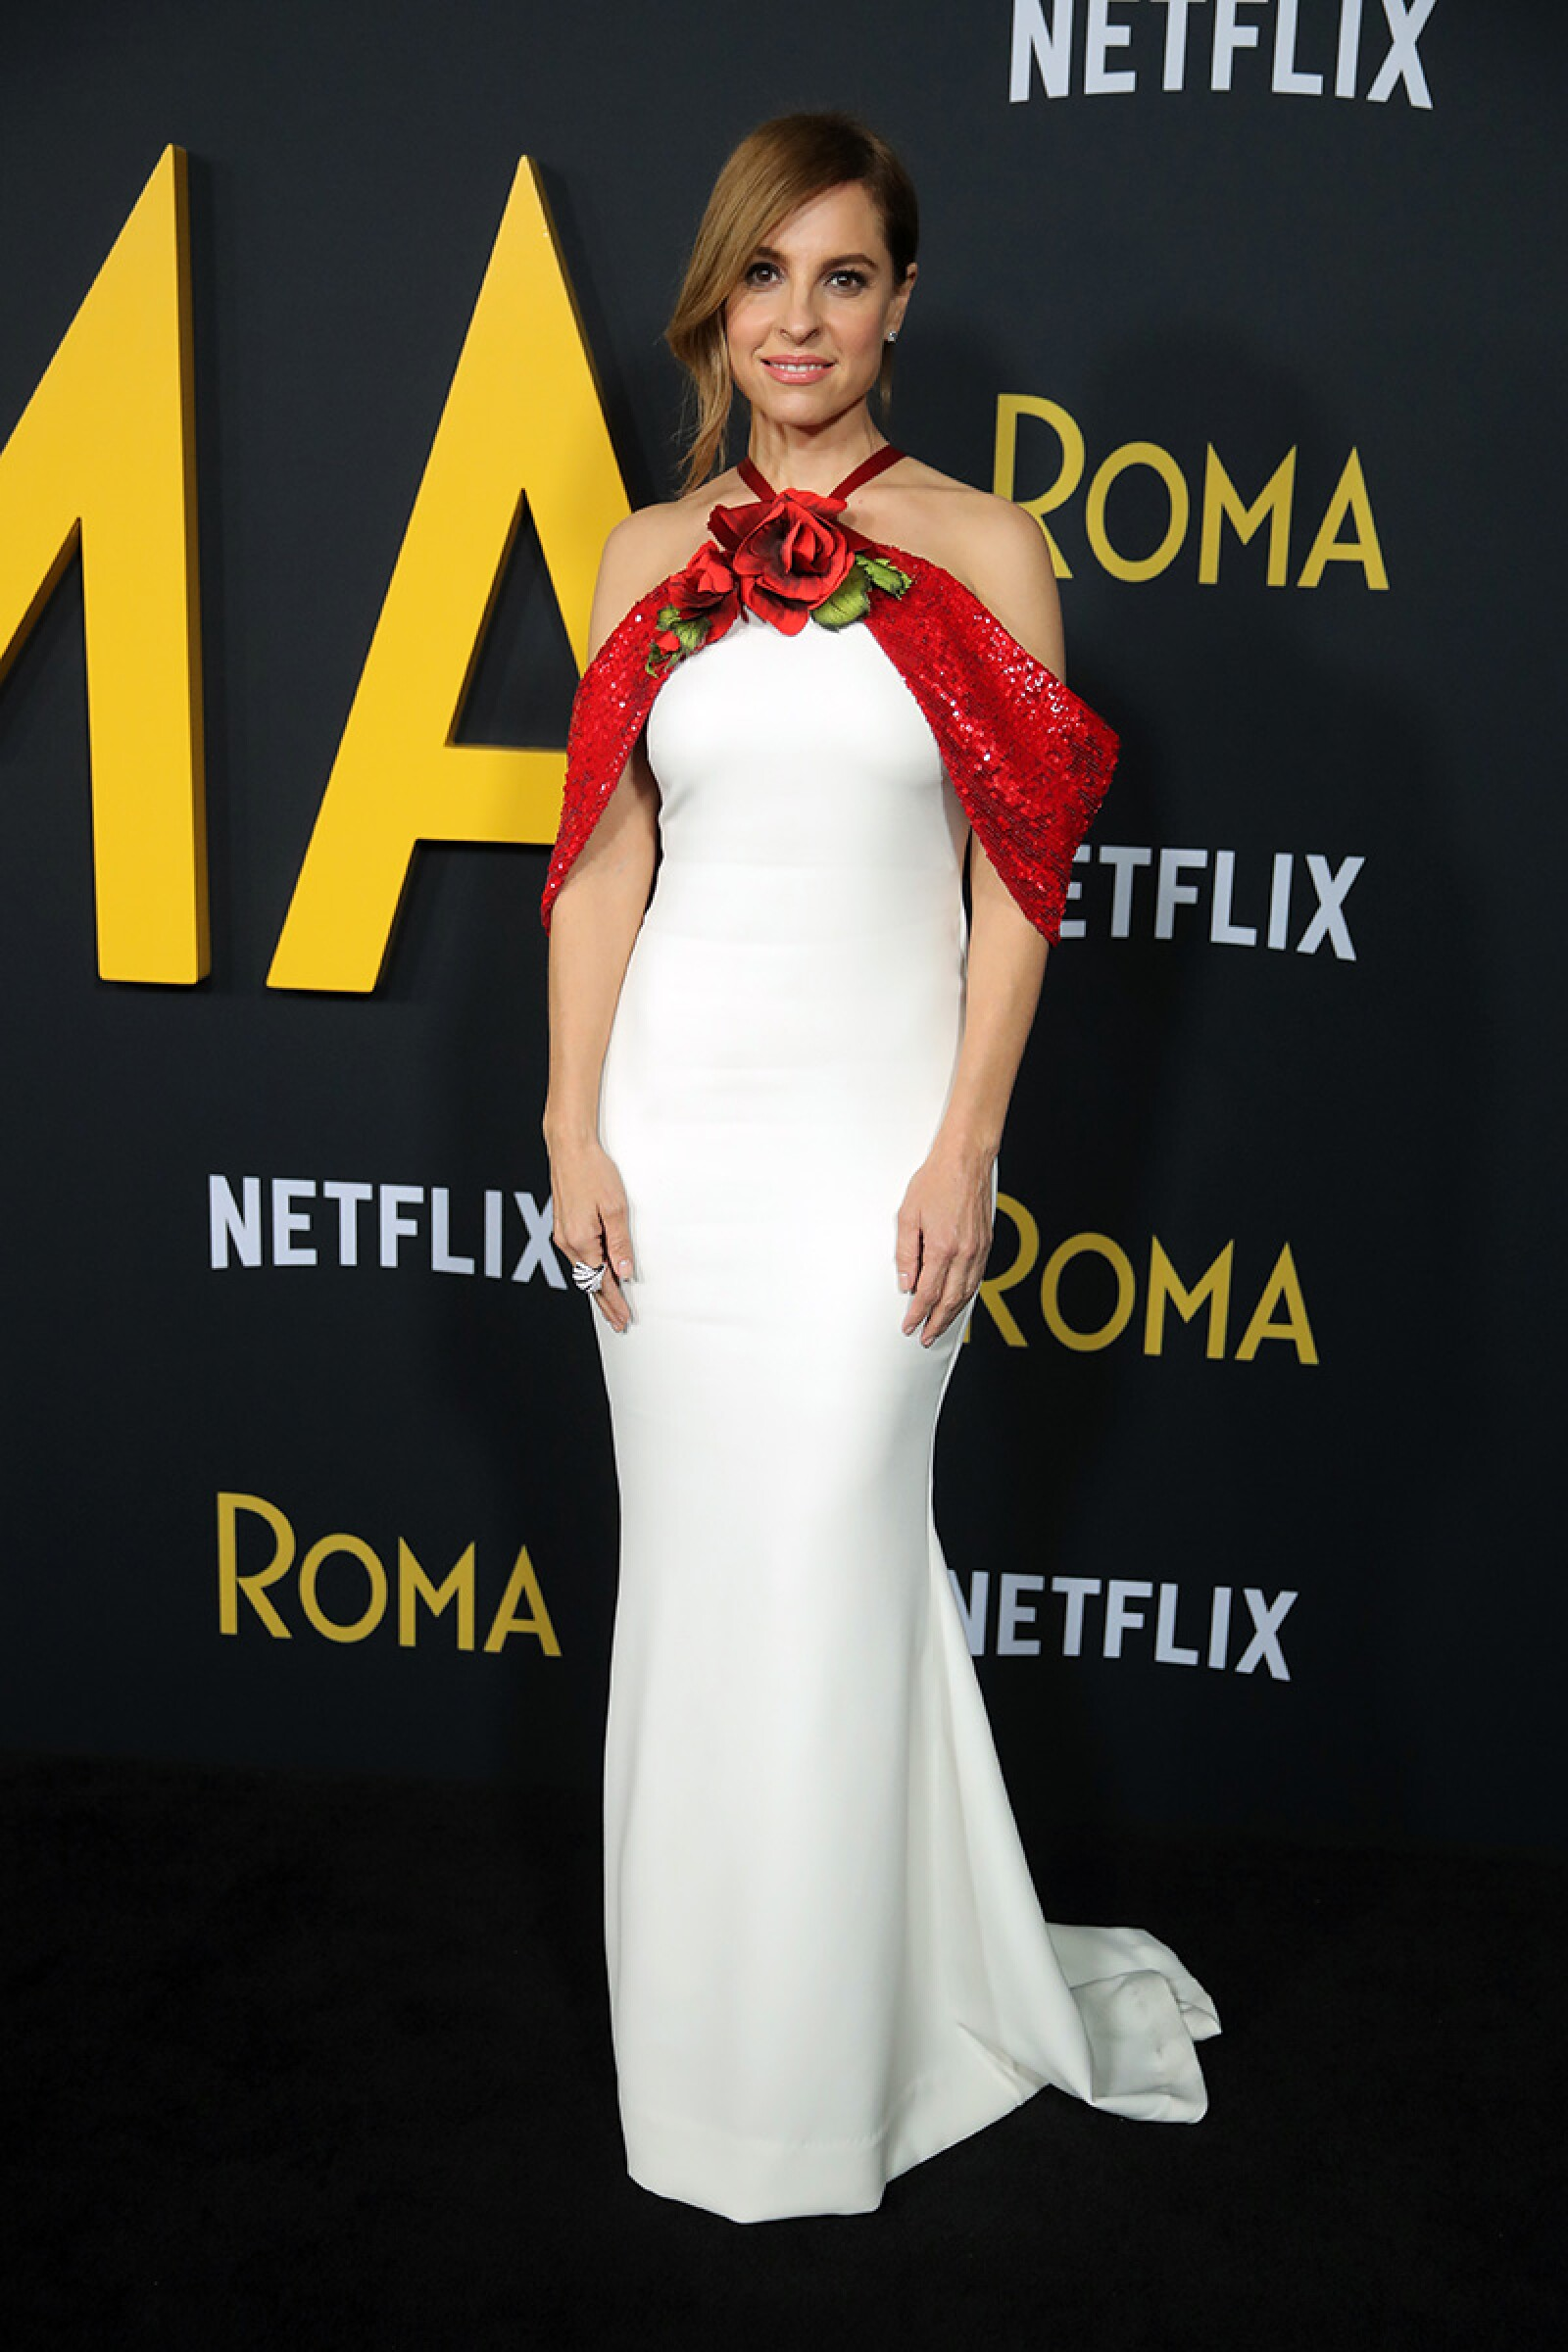 'Roma' film premiere, Arrivals, Los Angeles, USA - 10 Dec 2018